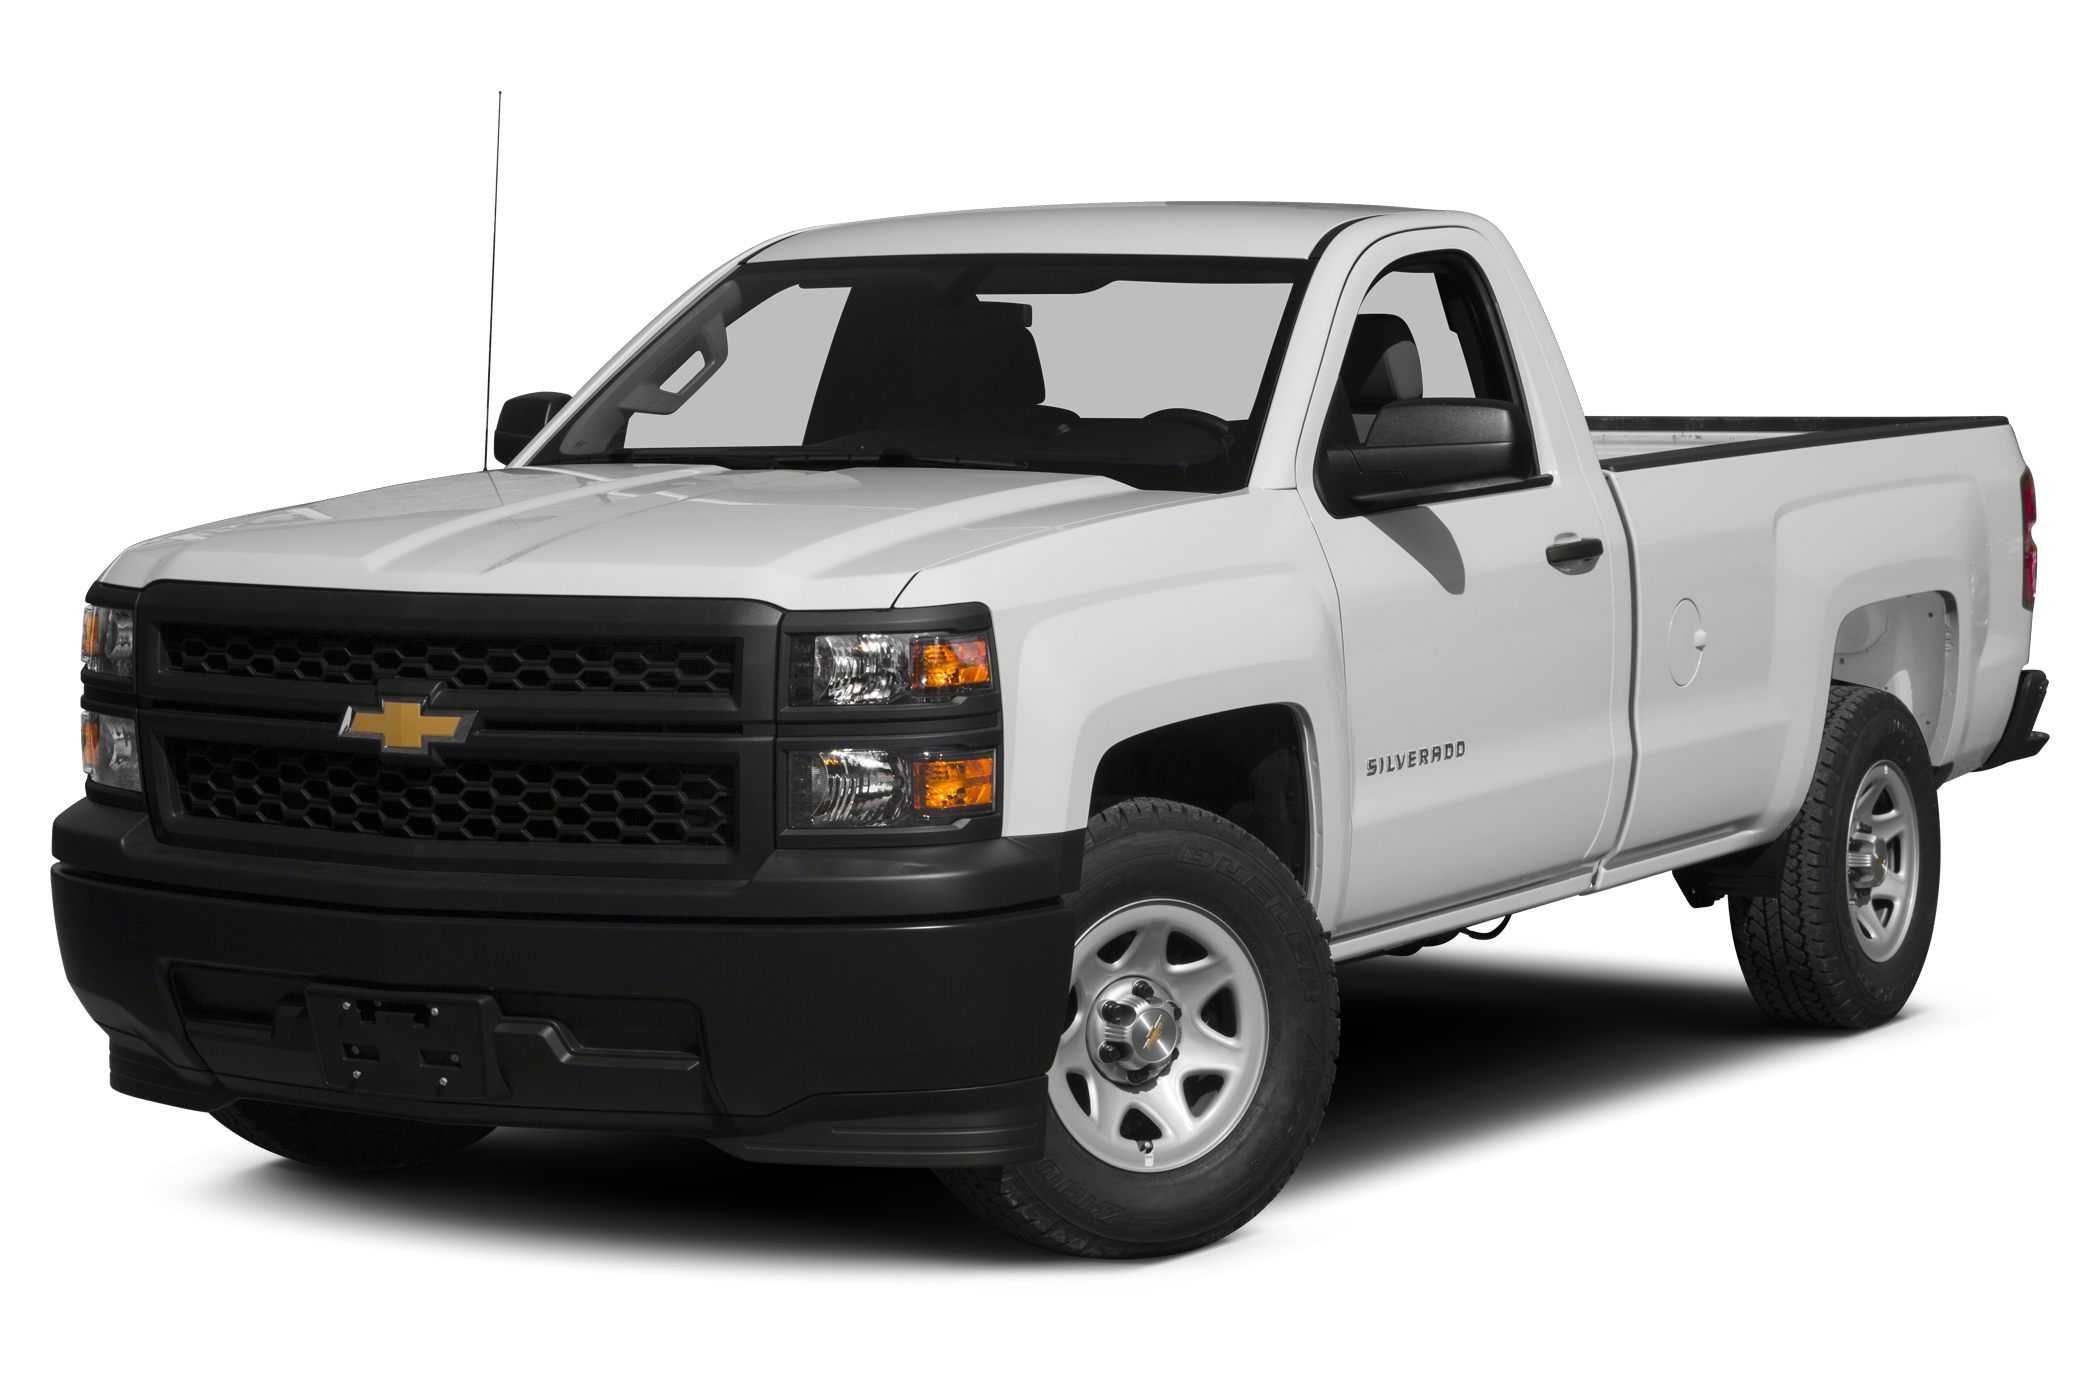 2015 Chevrolet Silverado 1500 WT Crew Cab Pickup for sale in Cullman for $38,135 with 4 miles.